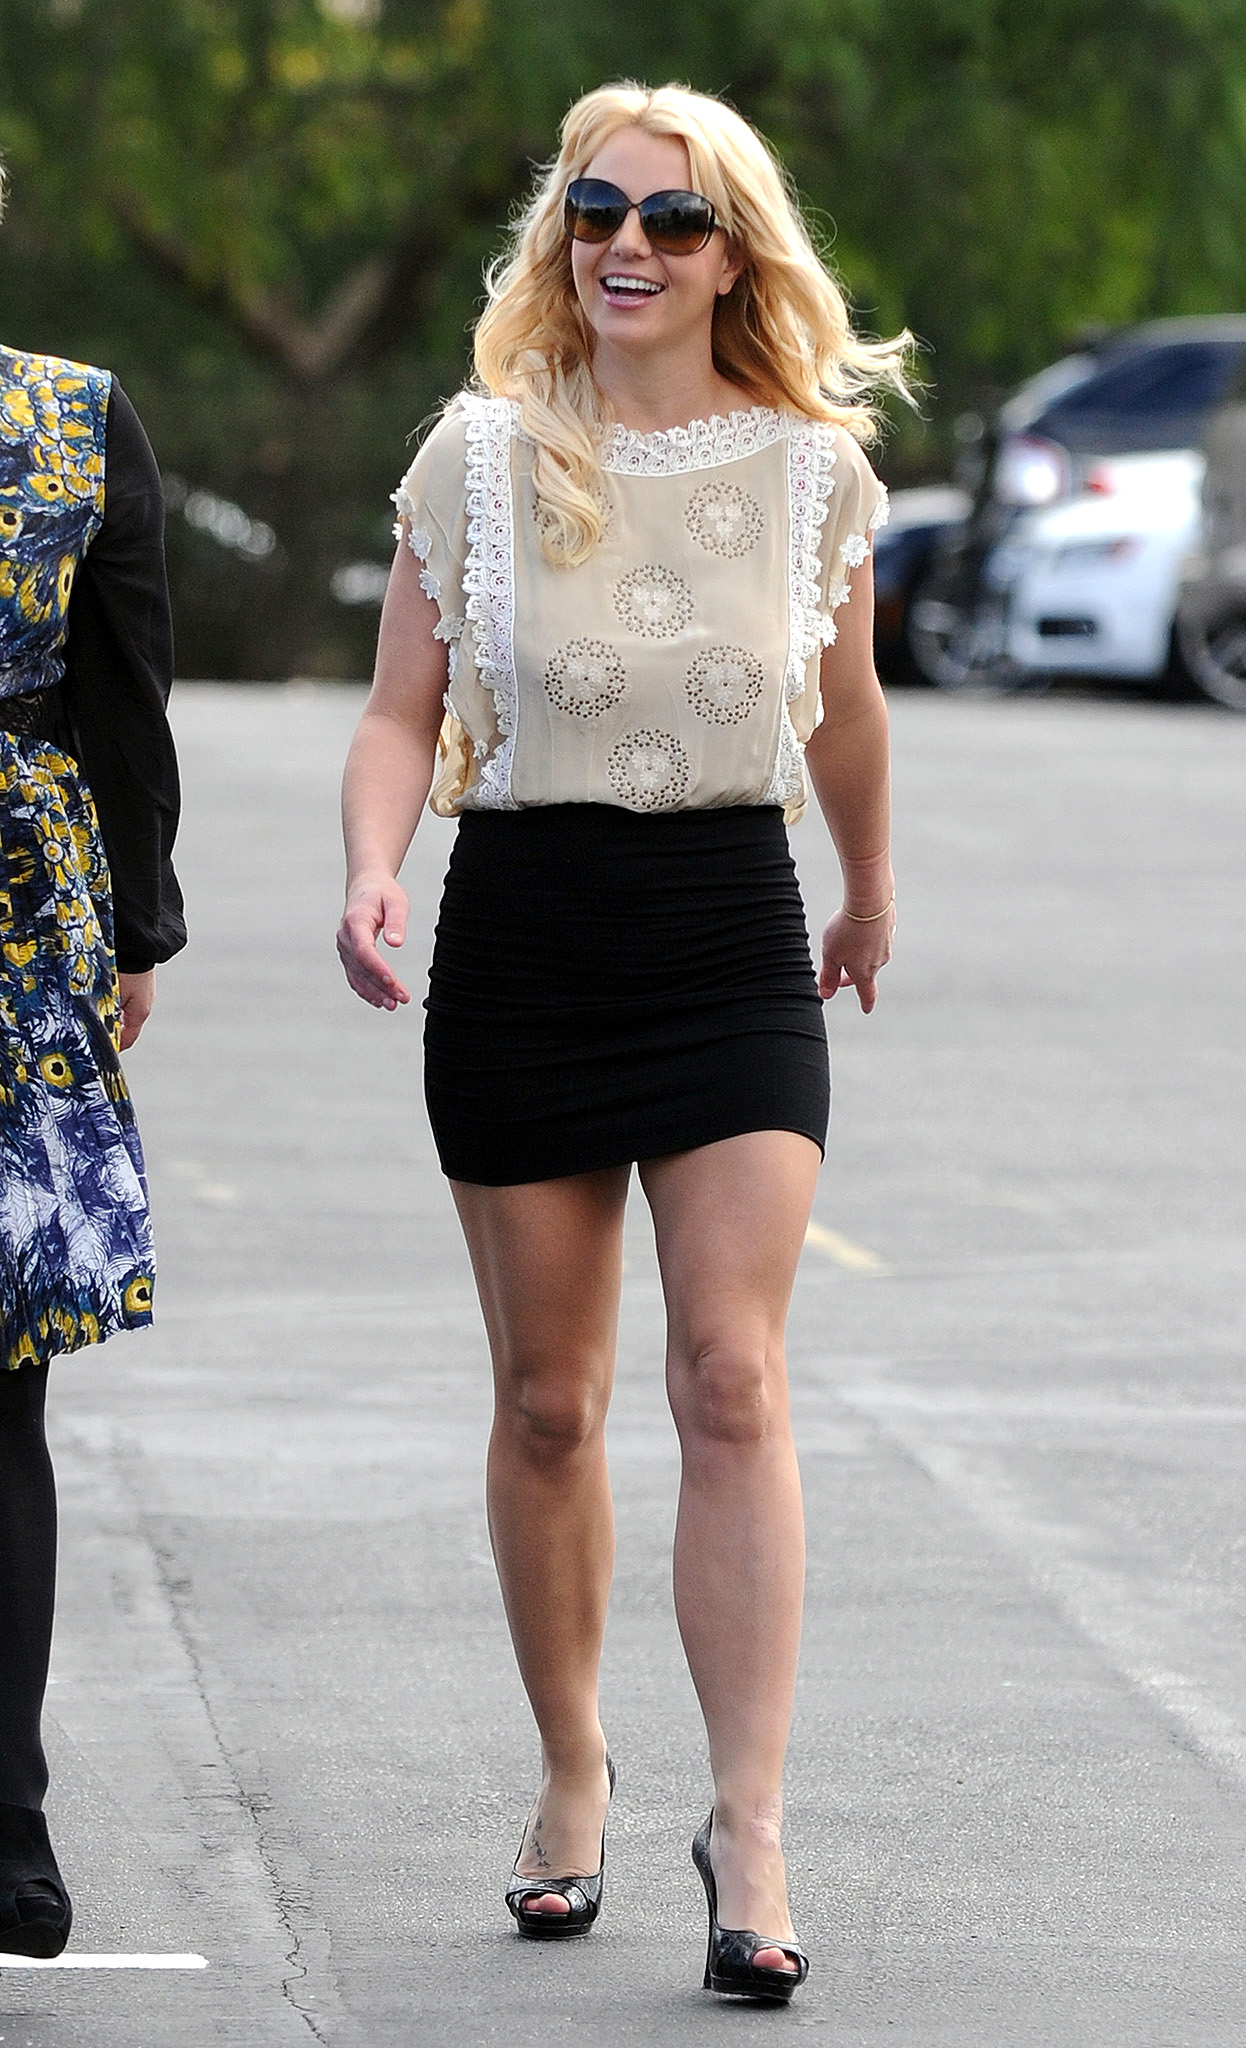 Britney hits church earlier this year. (Splash News)